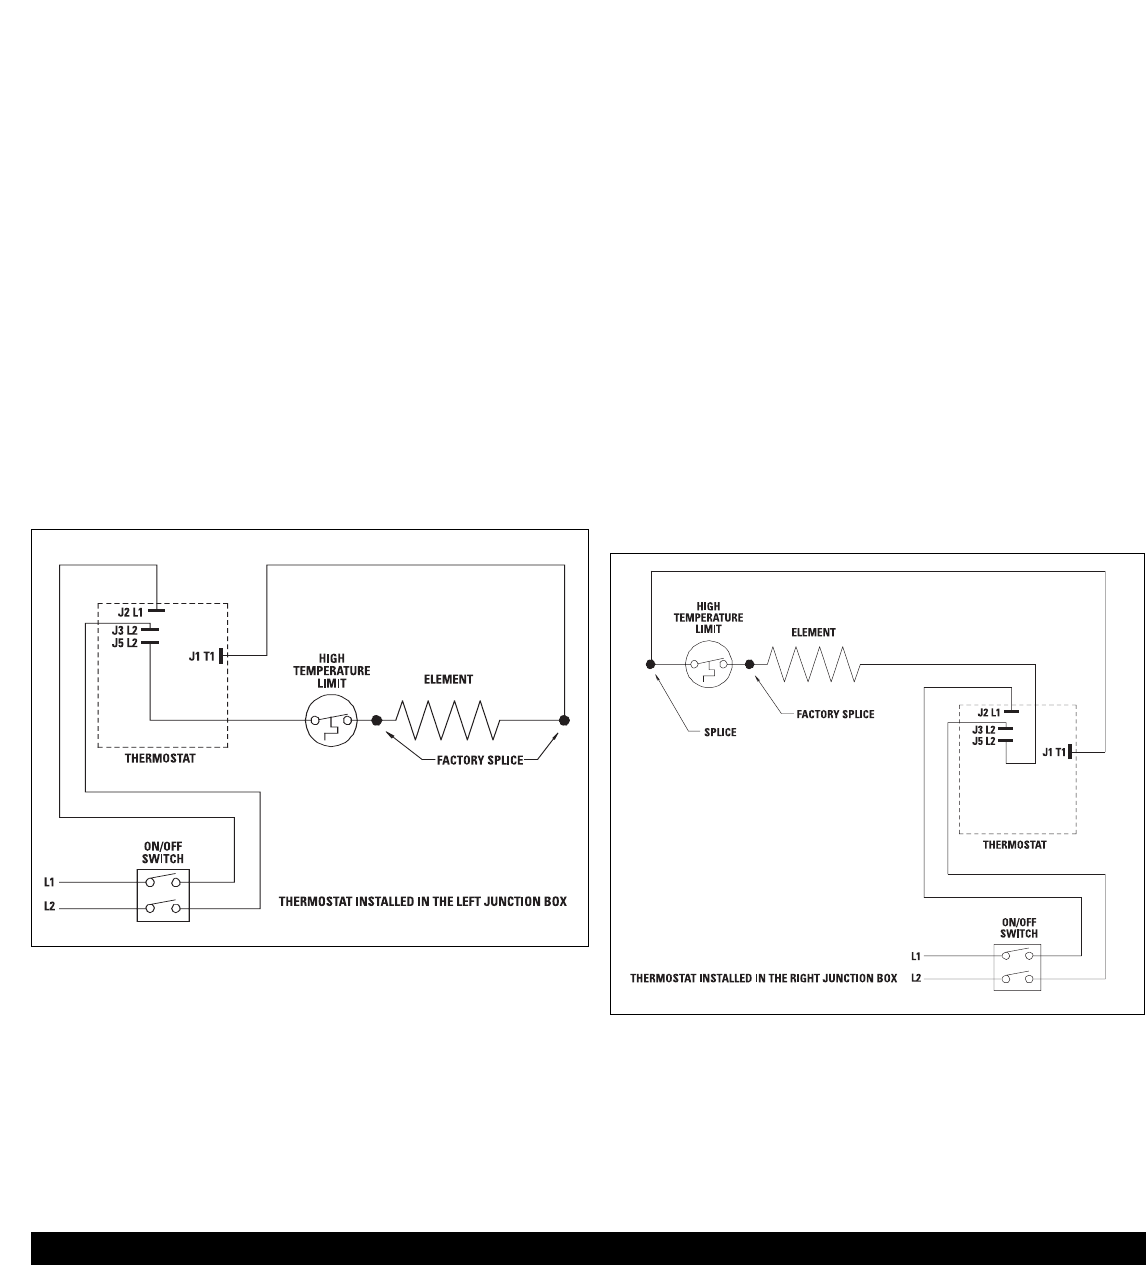 Diagram Baseboard Wiring Cadet Sbft2 Schematic Diagrams Heater 120 Volts Page 2 Of Thermostat User Guide Manualsonline Com Volt